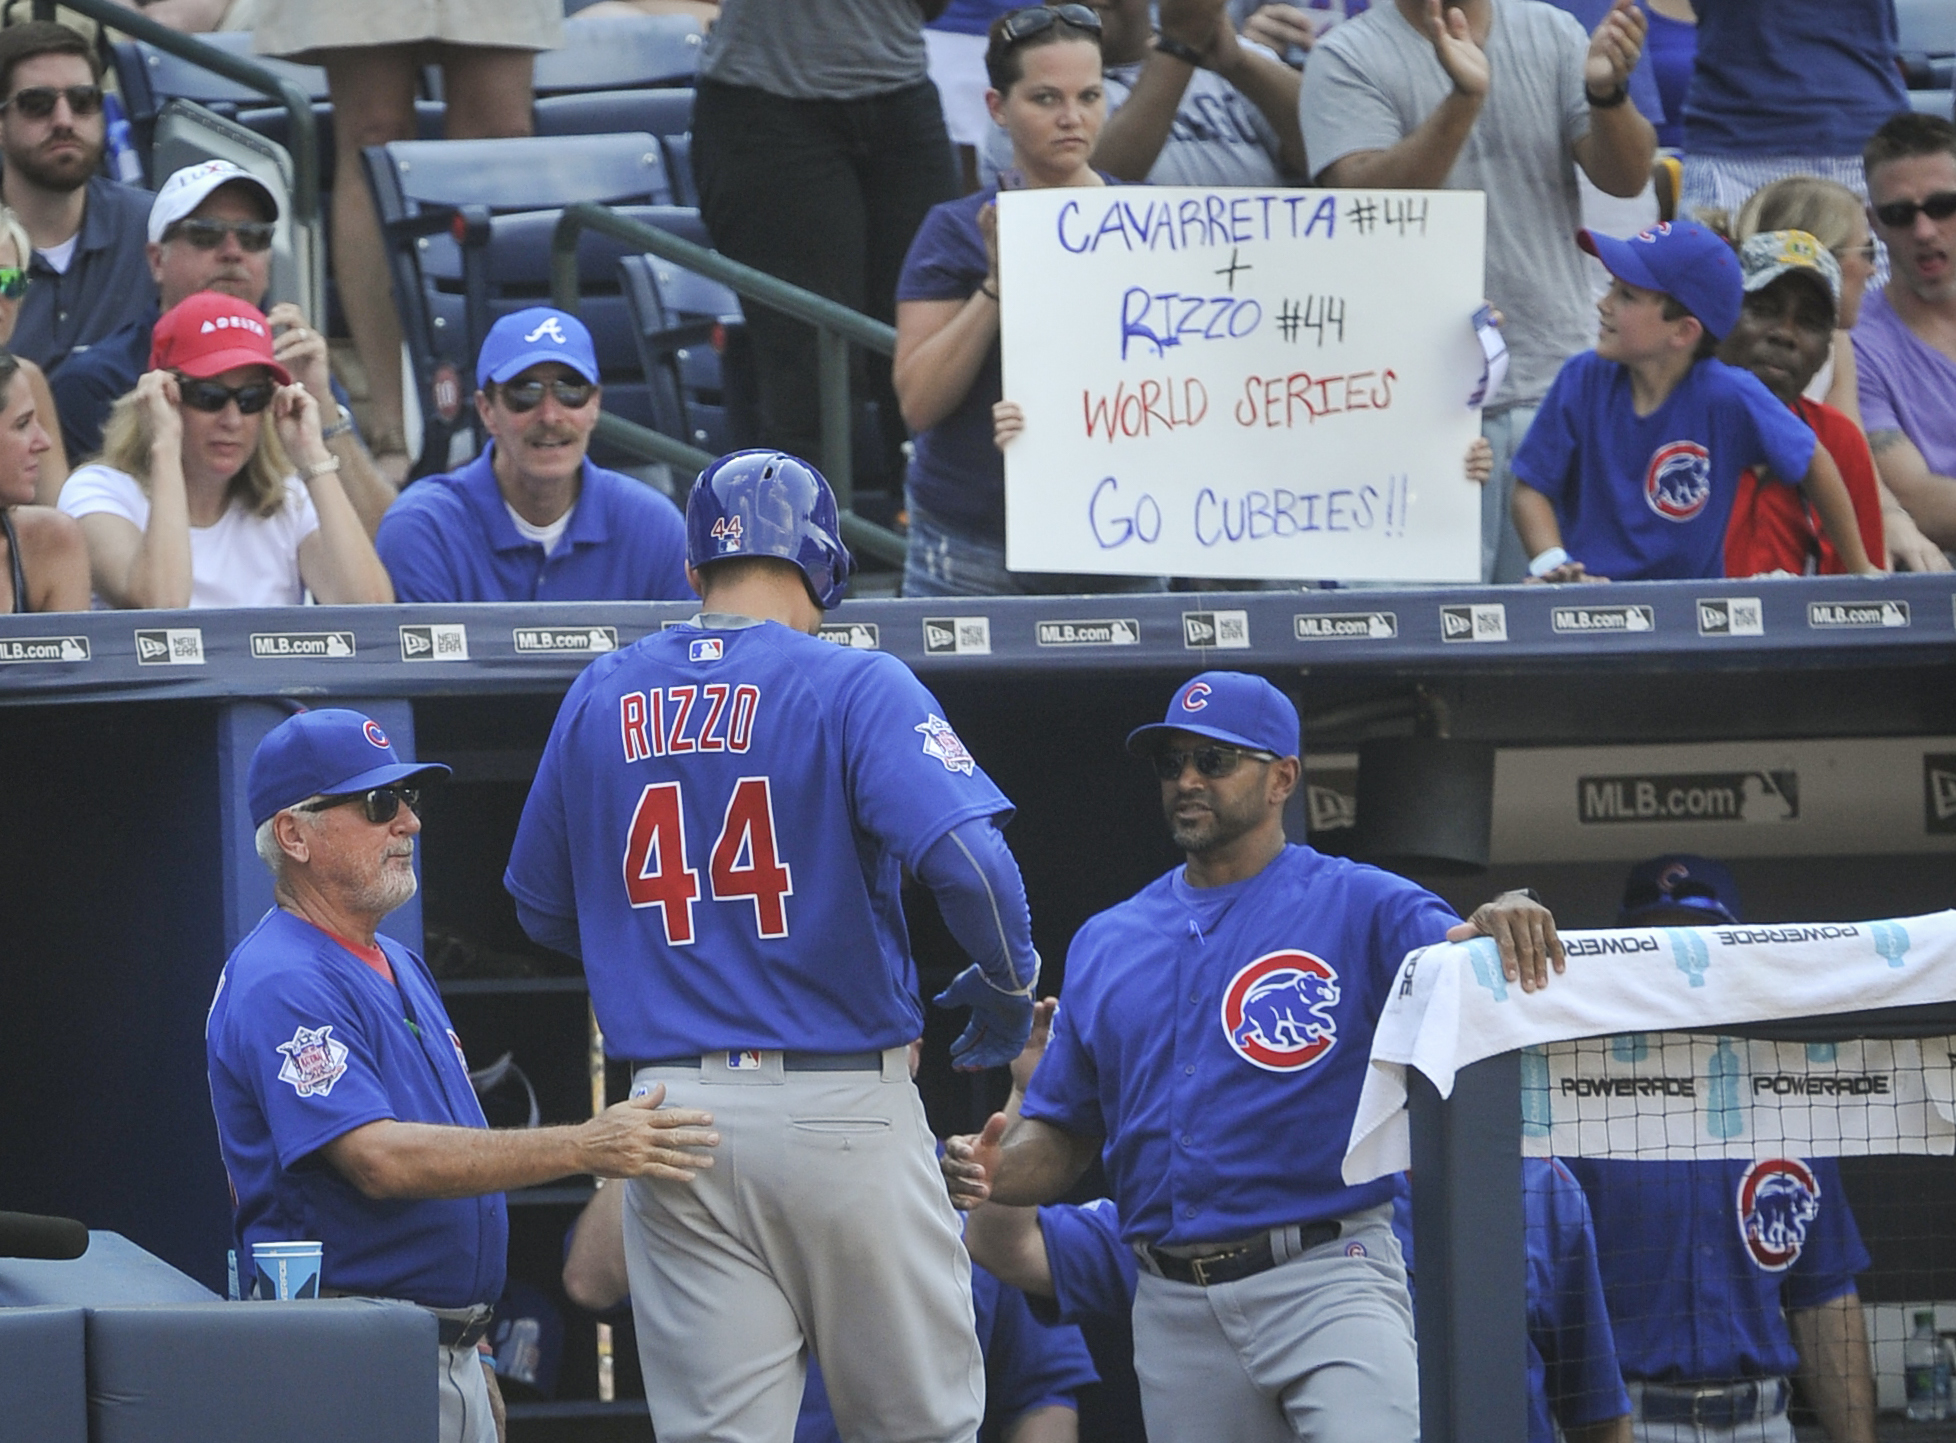 Chicago Cubs' Anthony Rizzo (44) is congratulated as he enters the dugout by manager Joe Maddon, left, after hitting a homerun to right center field against the Atlanta Braves during the fourth inning of a baseball game, Saturday, June, 11, 2016, in Atlan